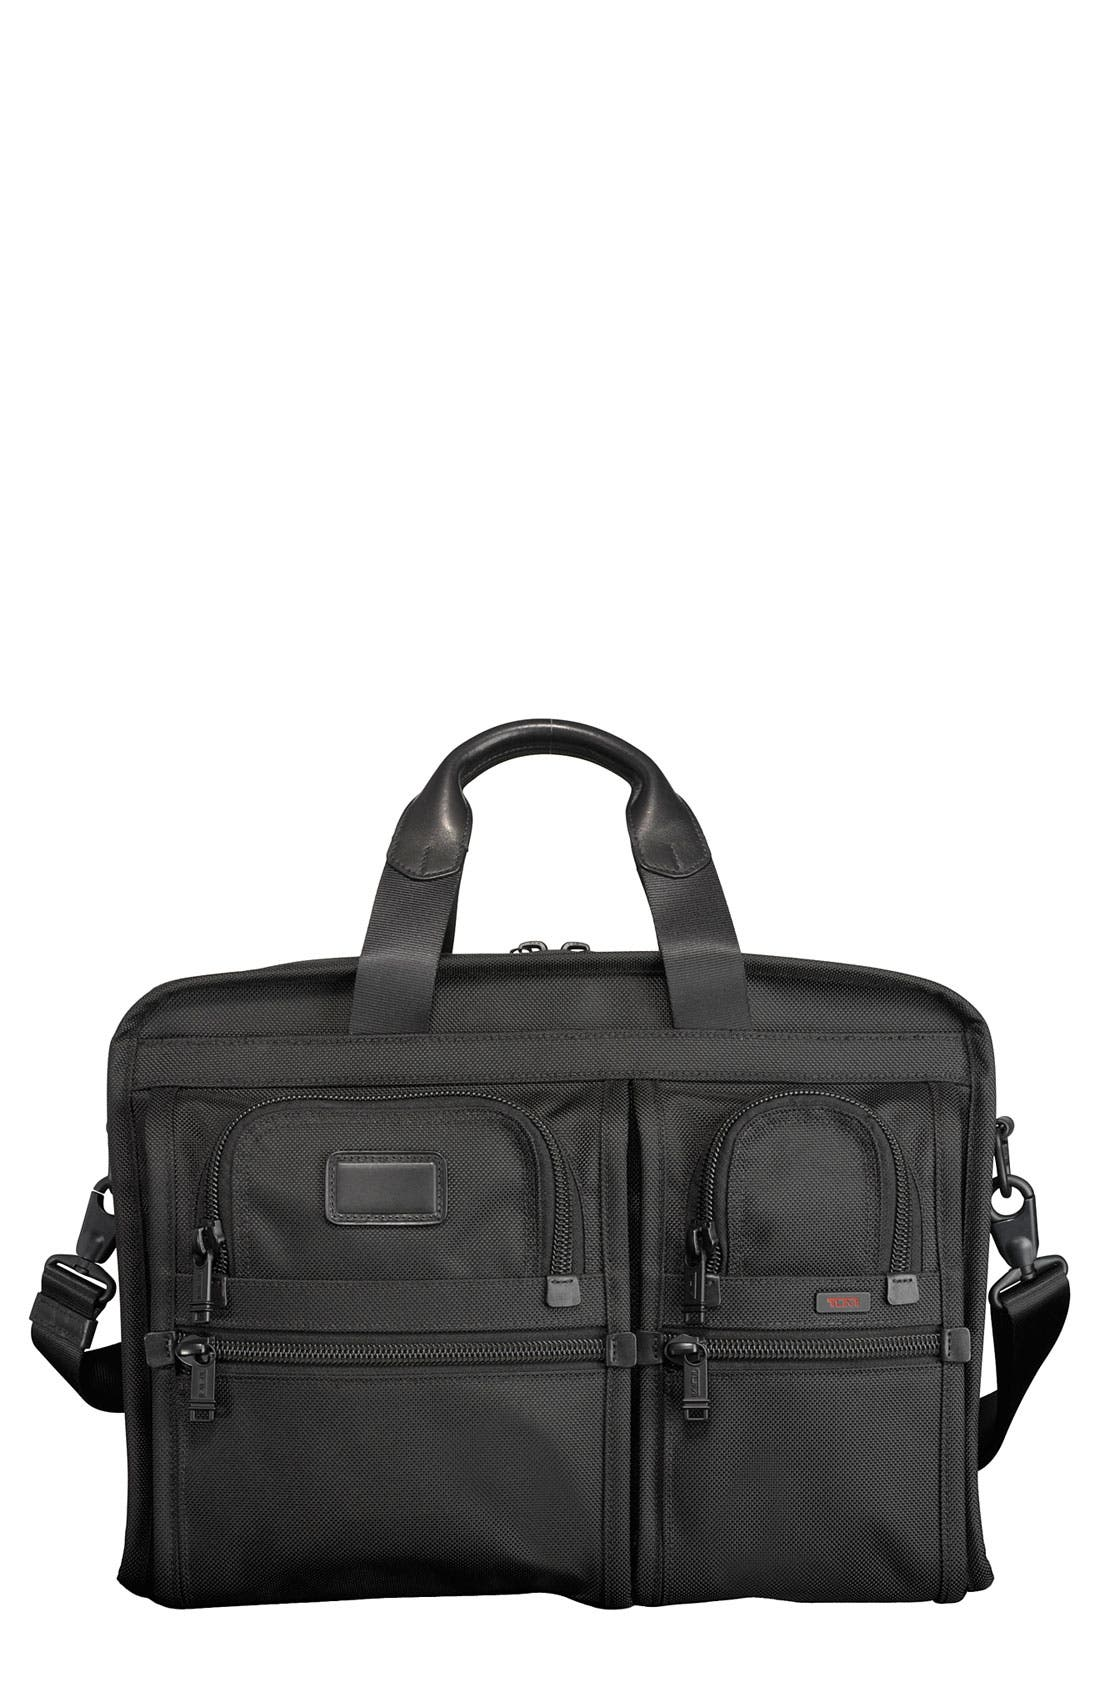 Main Image - Tumi 'Alpha' International Organizer Briefcase